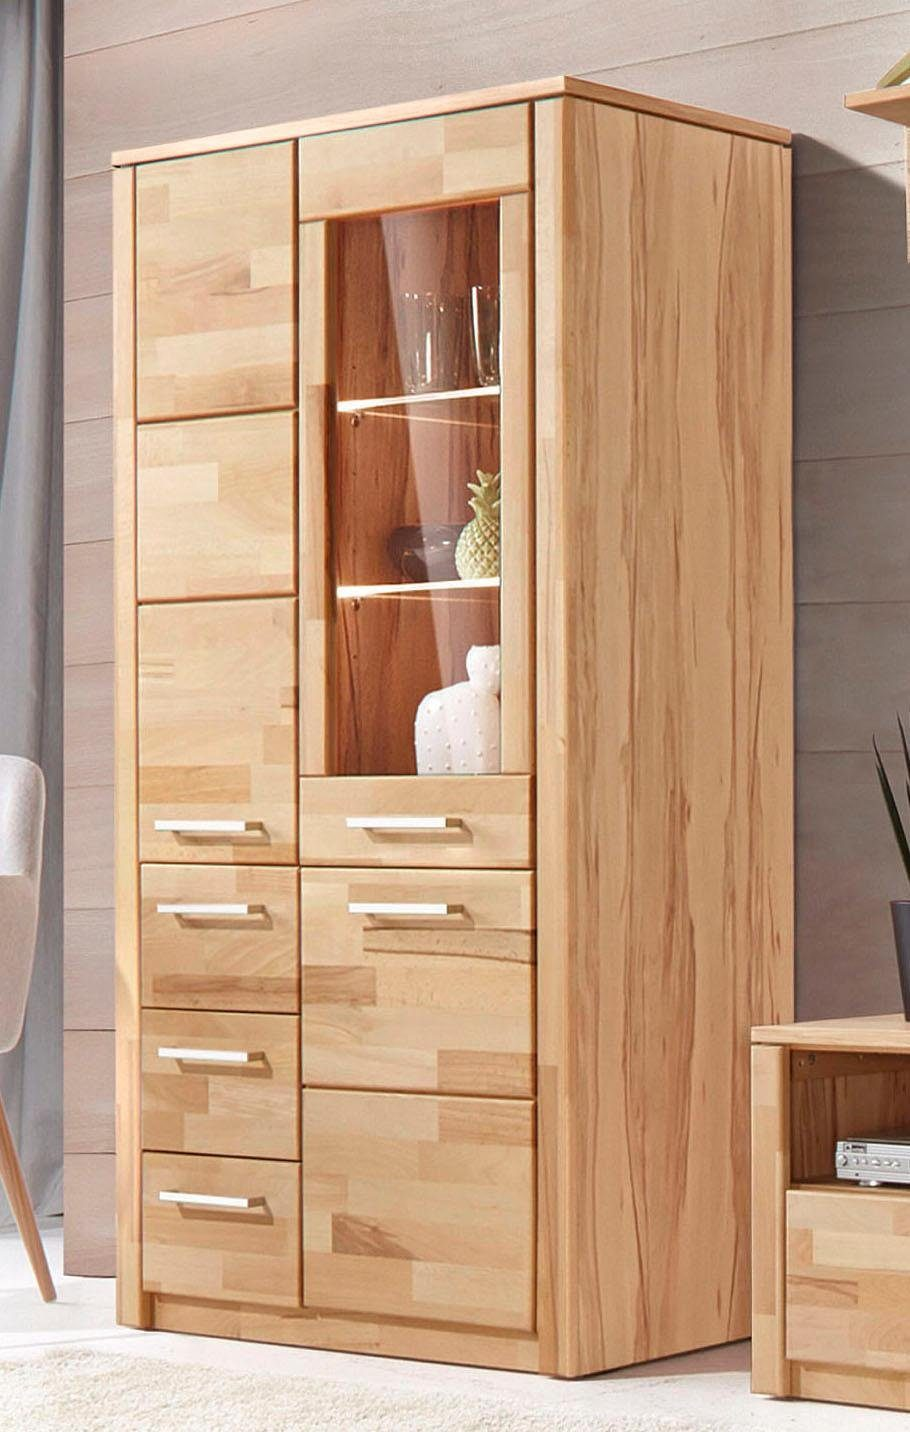 Highboard 80 Cm Breit Places Of Style Highboard »gronfeld«, Breite 80 Cm | Otto